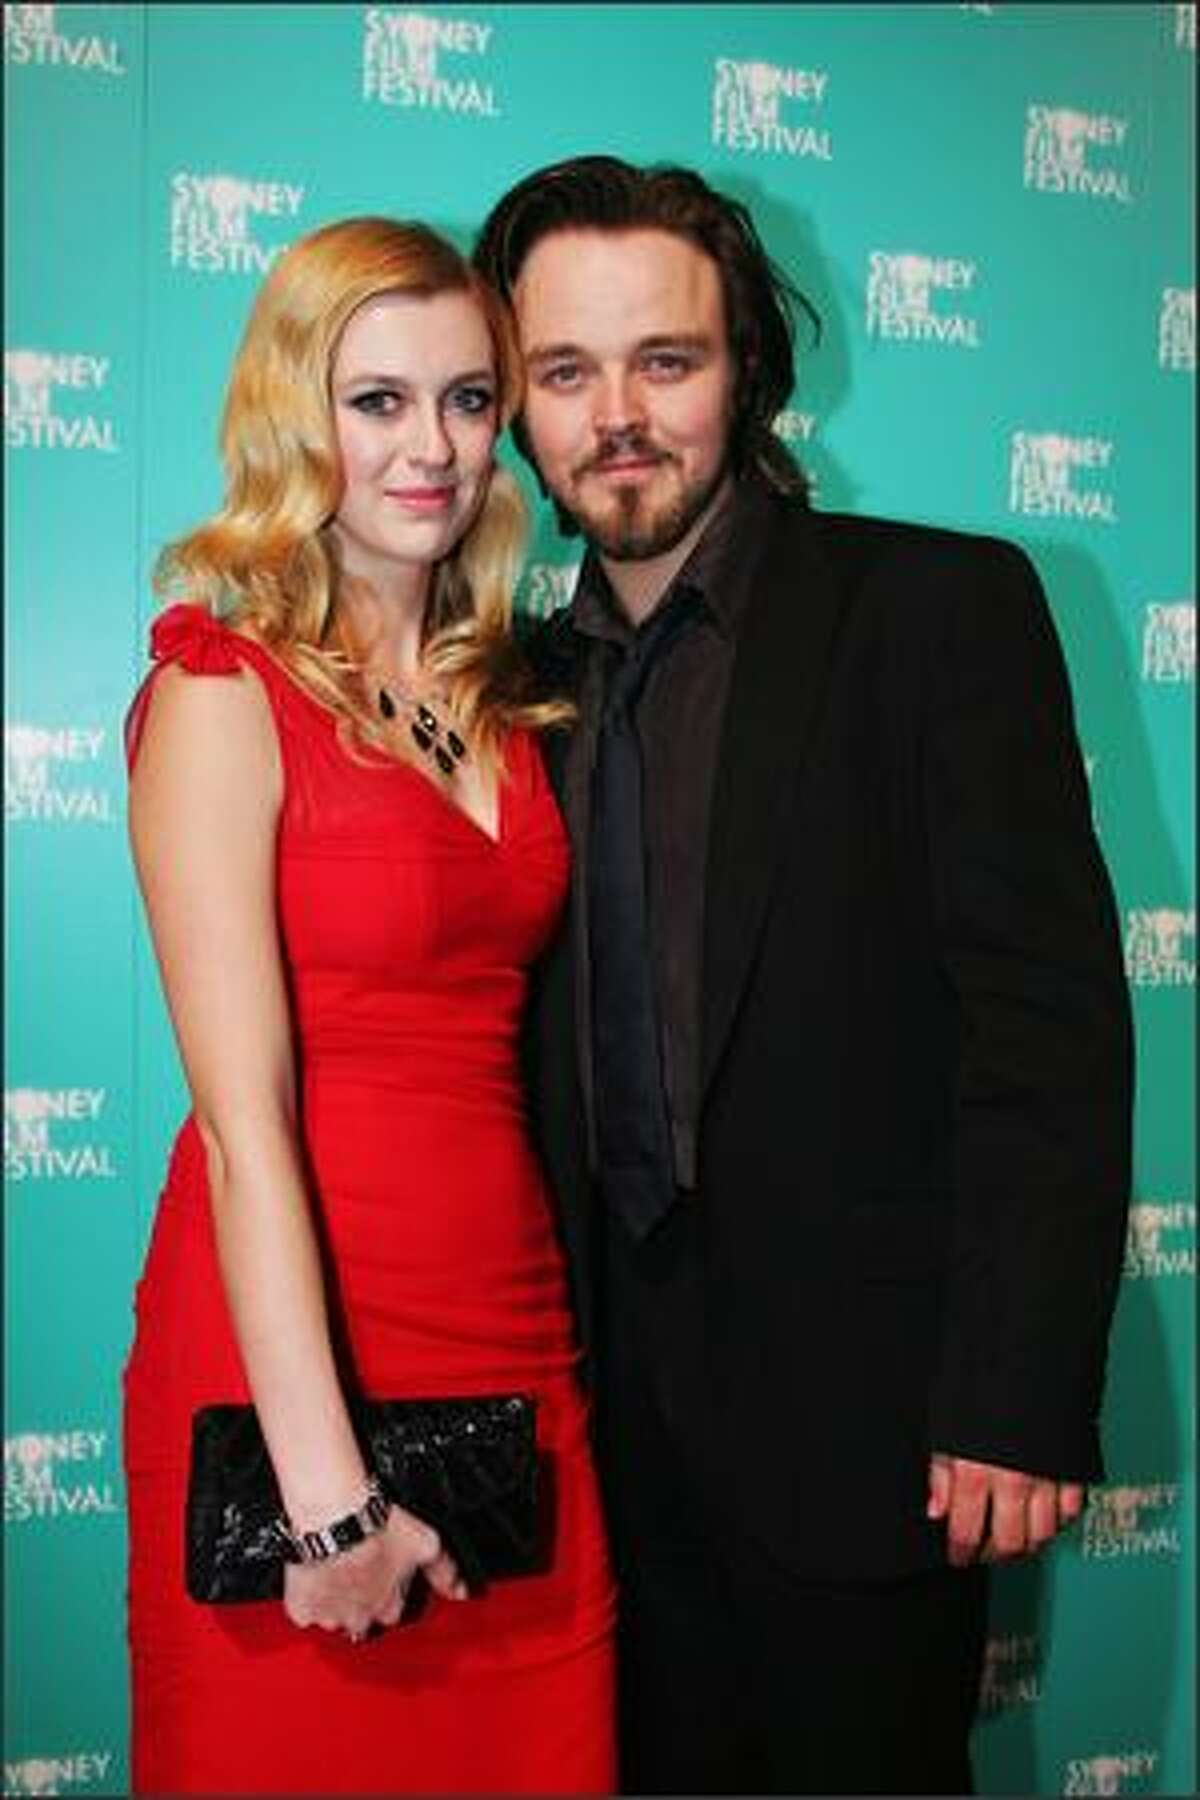 Gracie Otto and Matthew Newton attends the opening gala night and premiere of 'Happy-Go-Lucky' during the 55th Sydney Film Festival at the State Theatre on Wednesday in Sydney, Australia.